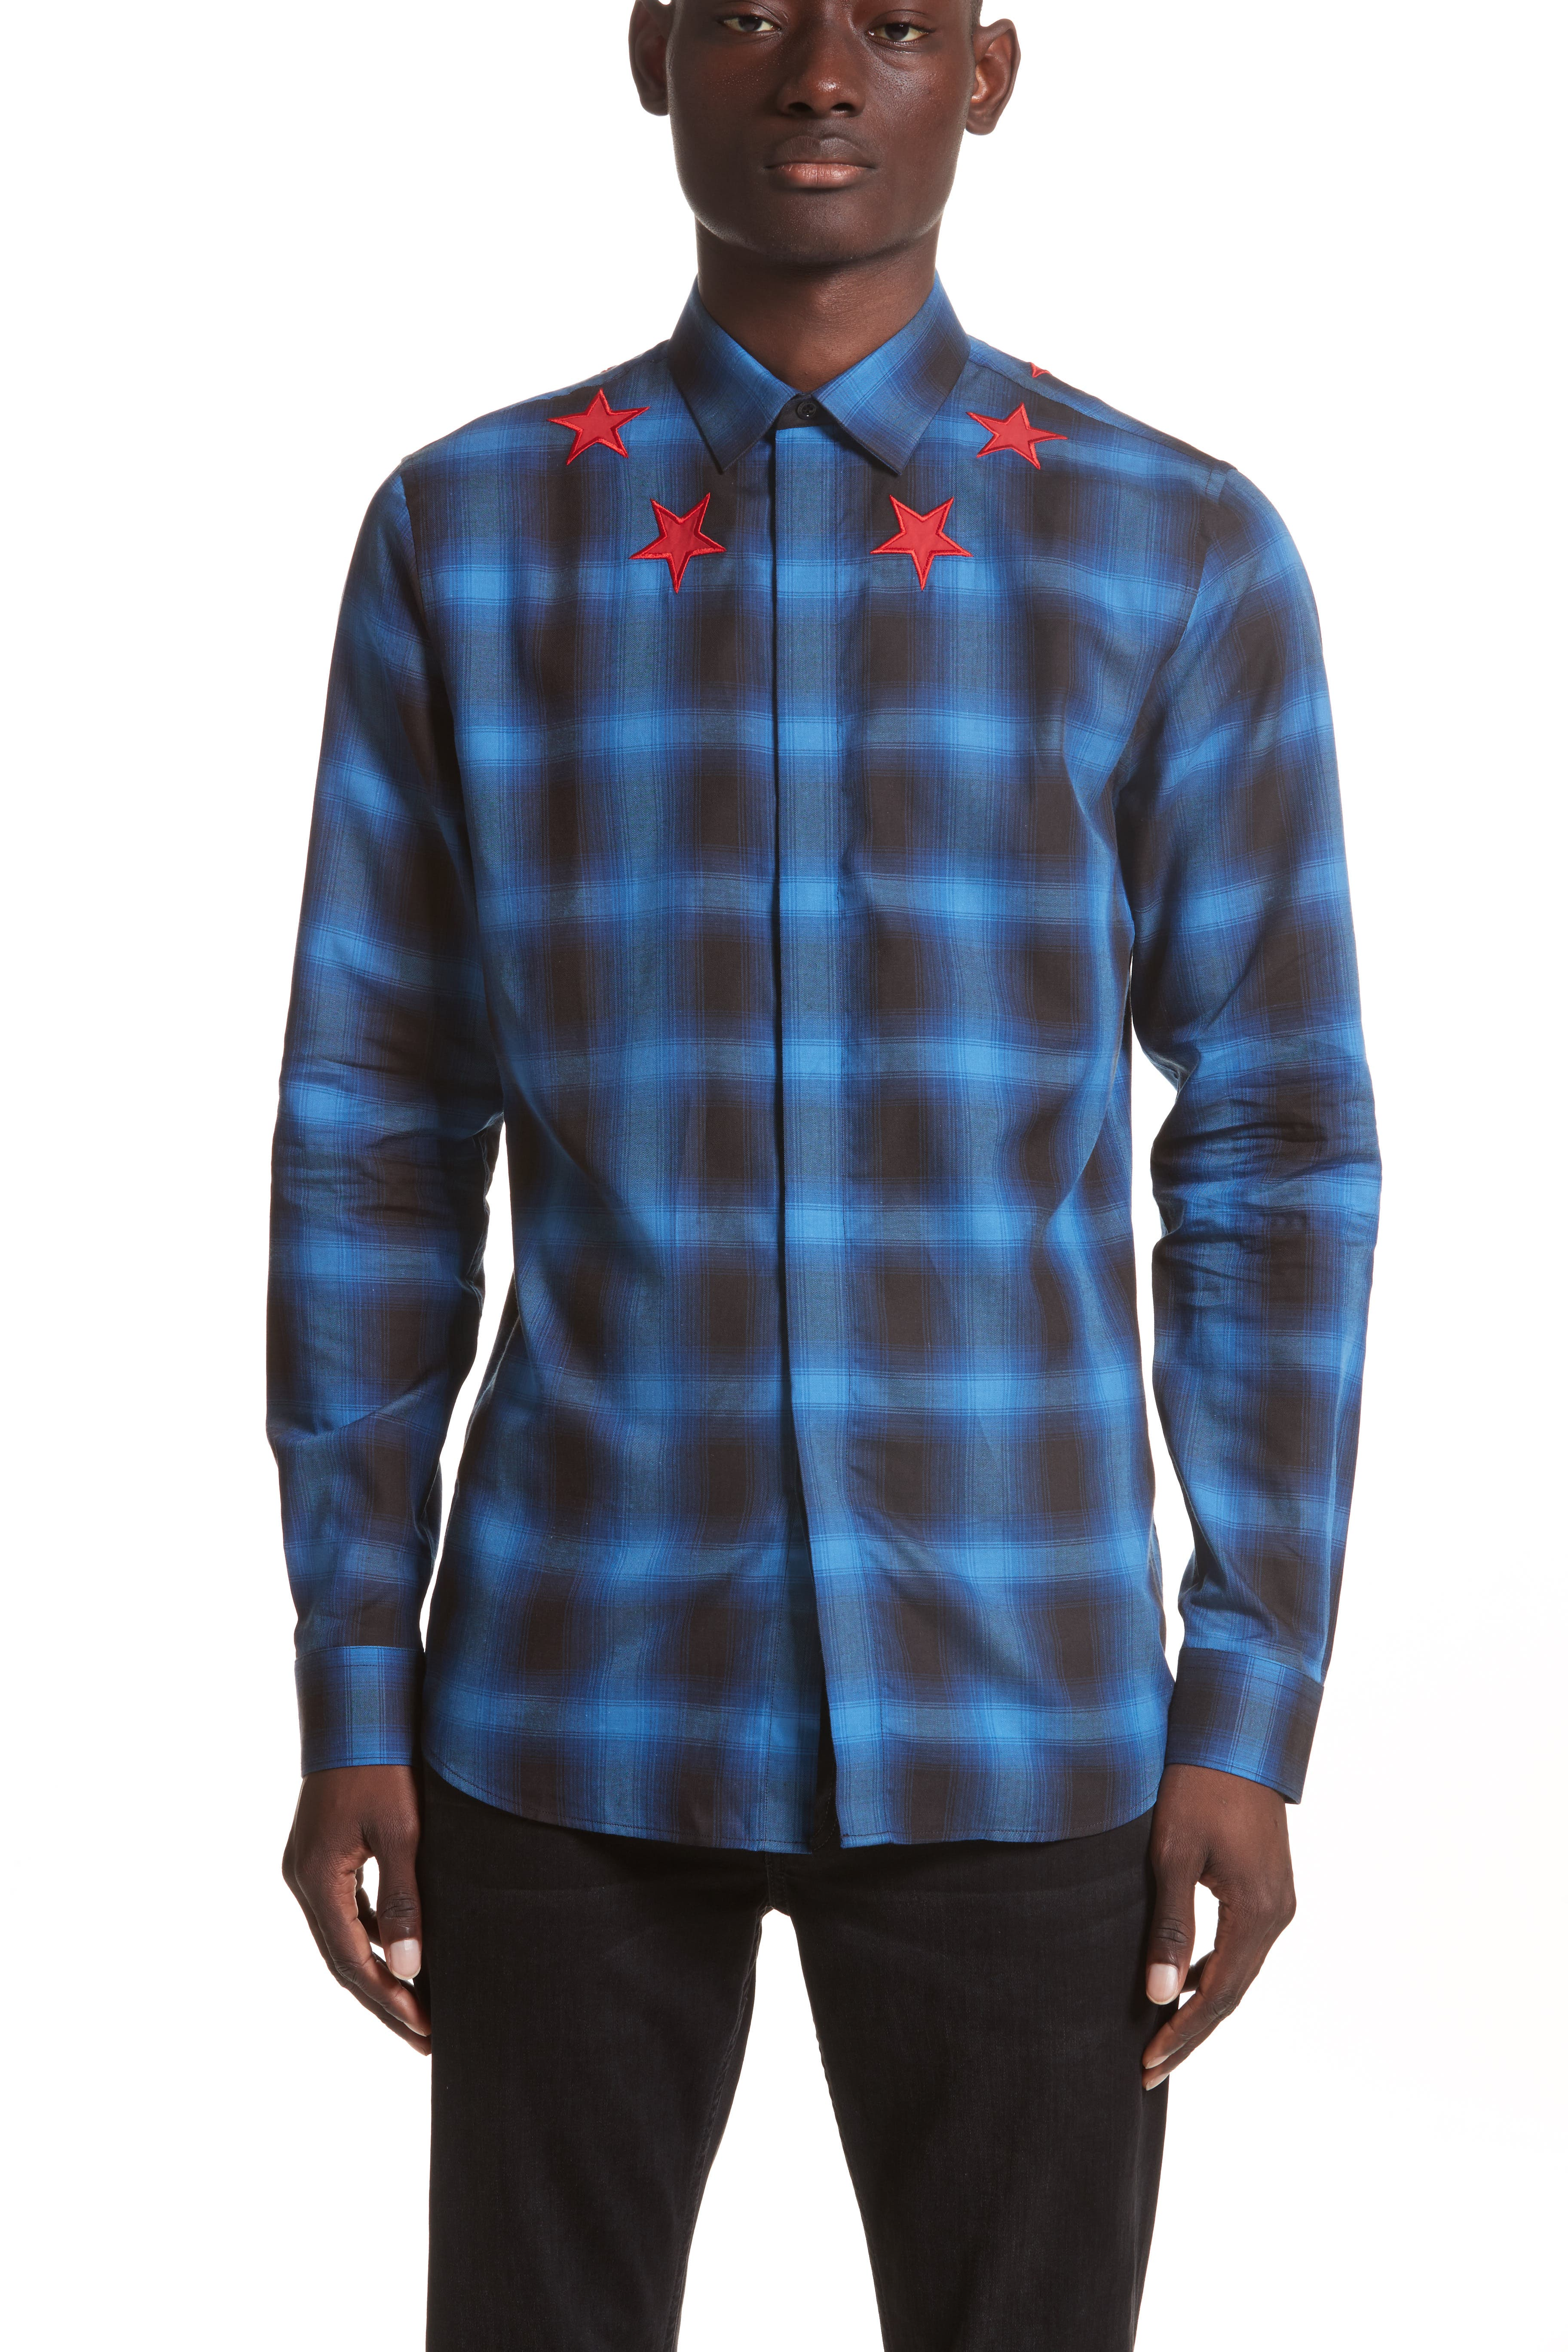 Givenchy Star Embroidered Plaid Shirt